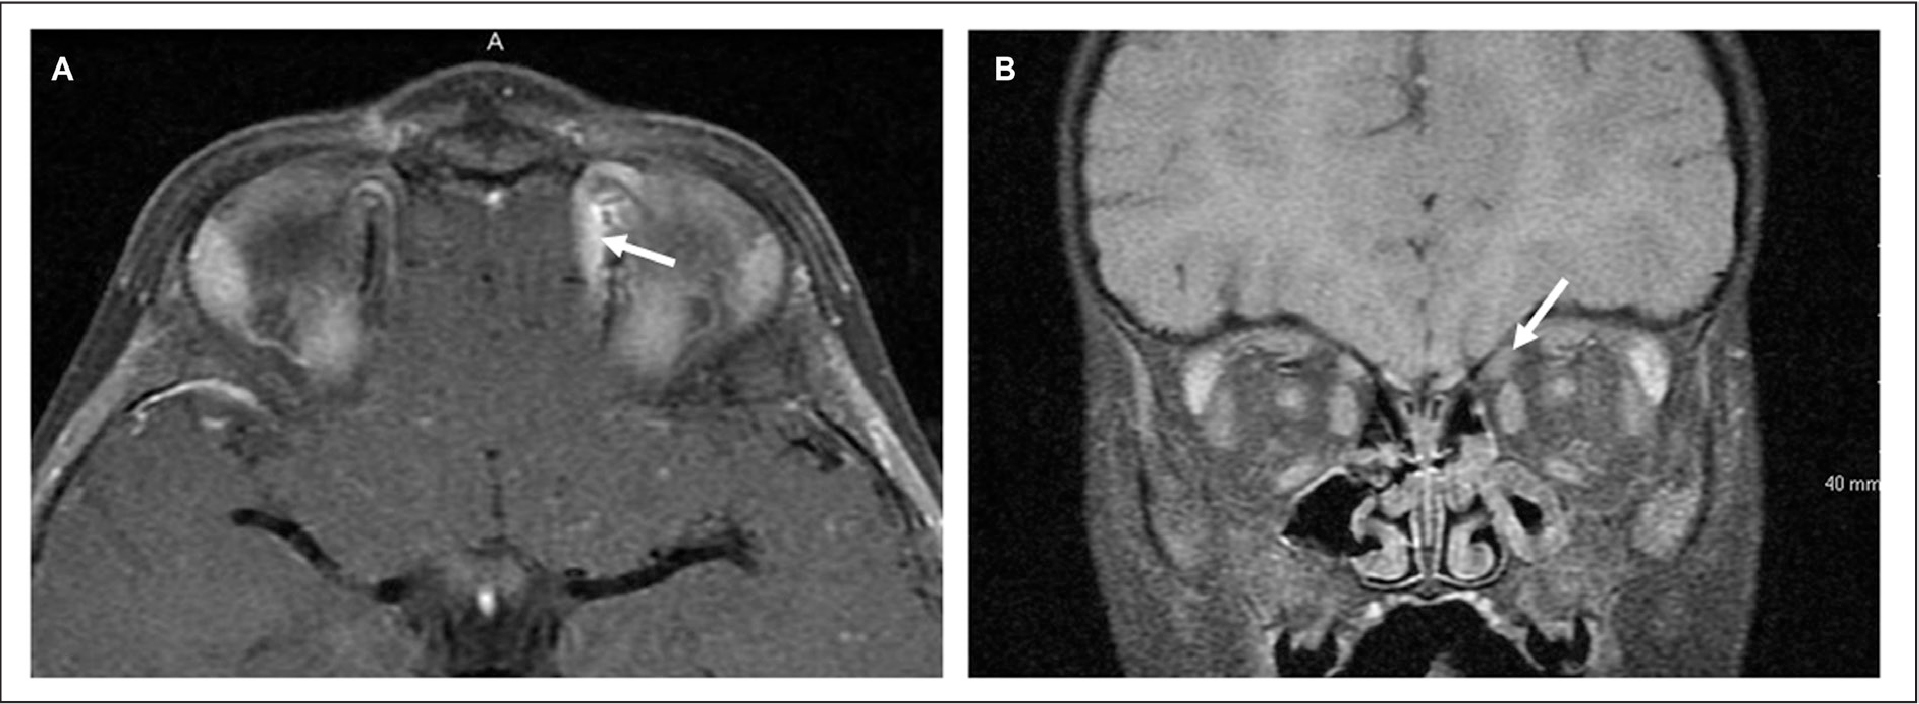 (A) Magnetic resonance imaging with water excitation reveals enhancement of the left superior oblique tendon (arrow) with good visualization of the trochlea on axial view. (B) Left superior oblique enhancement (arrow) and left maxillary sinus thickening is seen on coronal view.